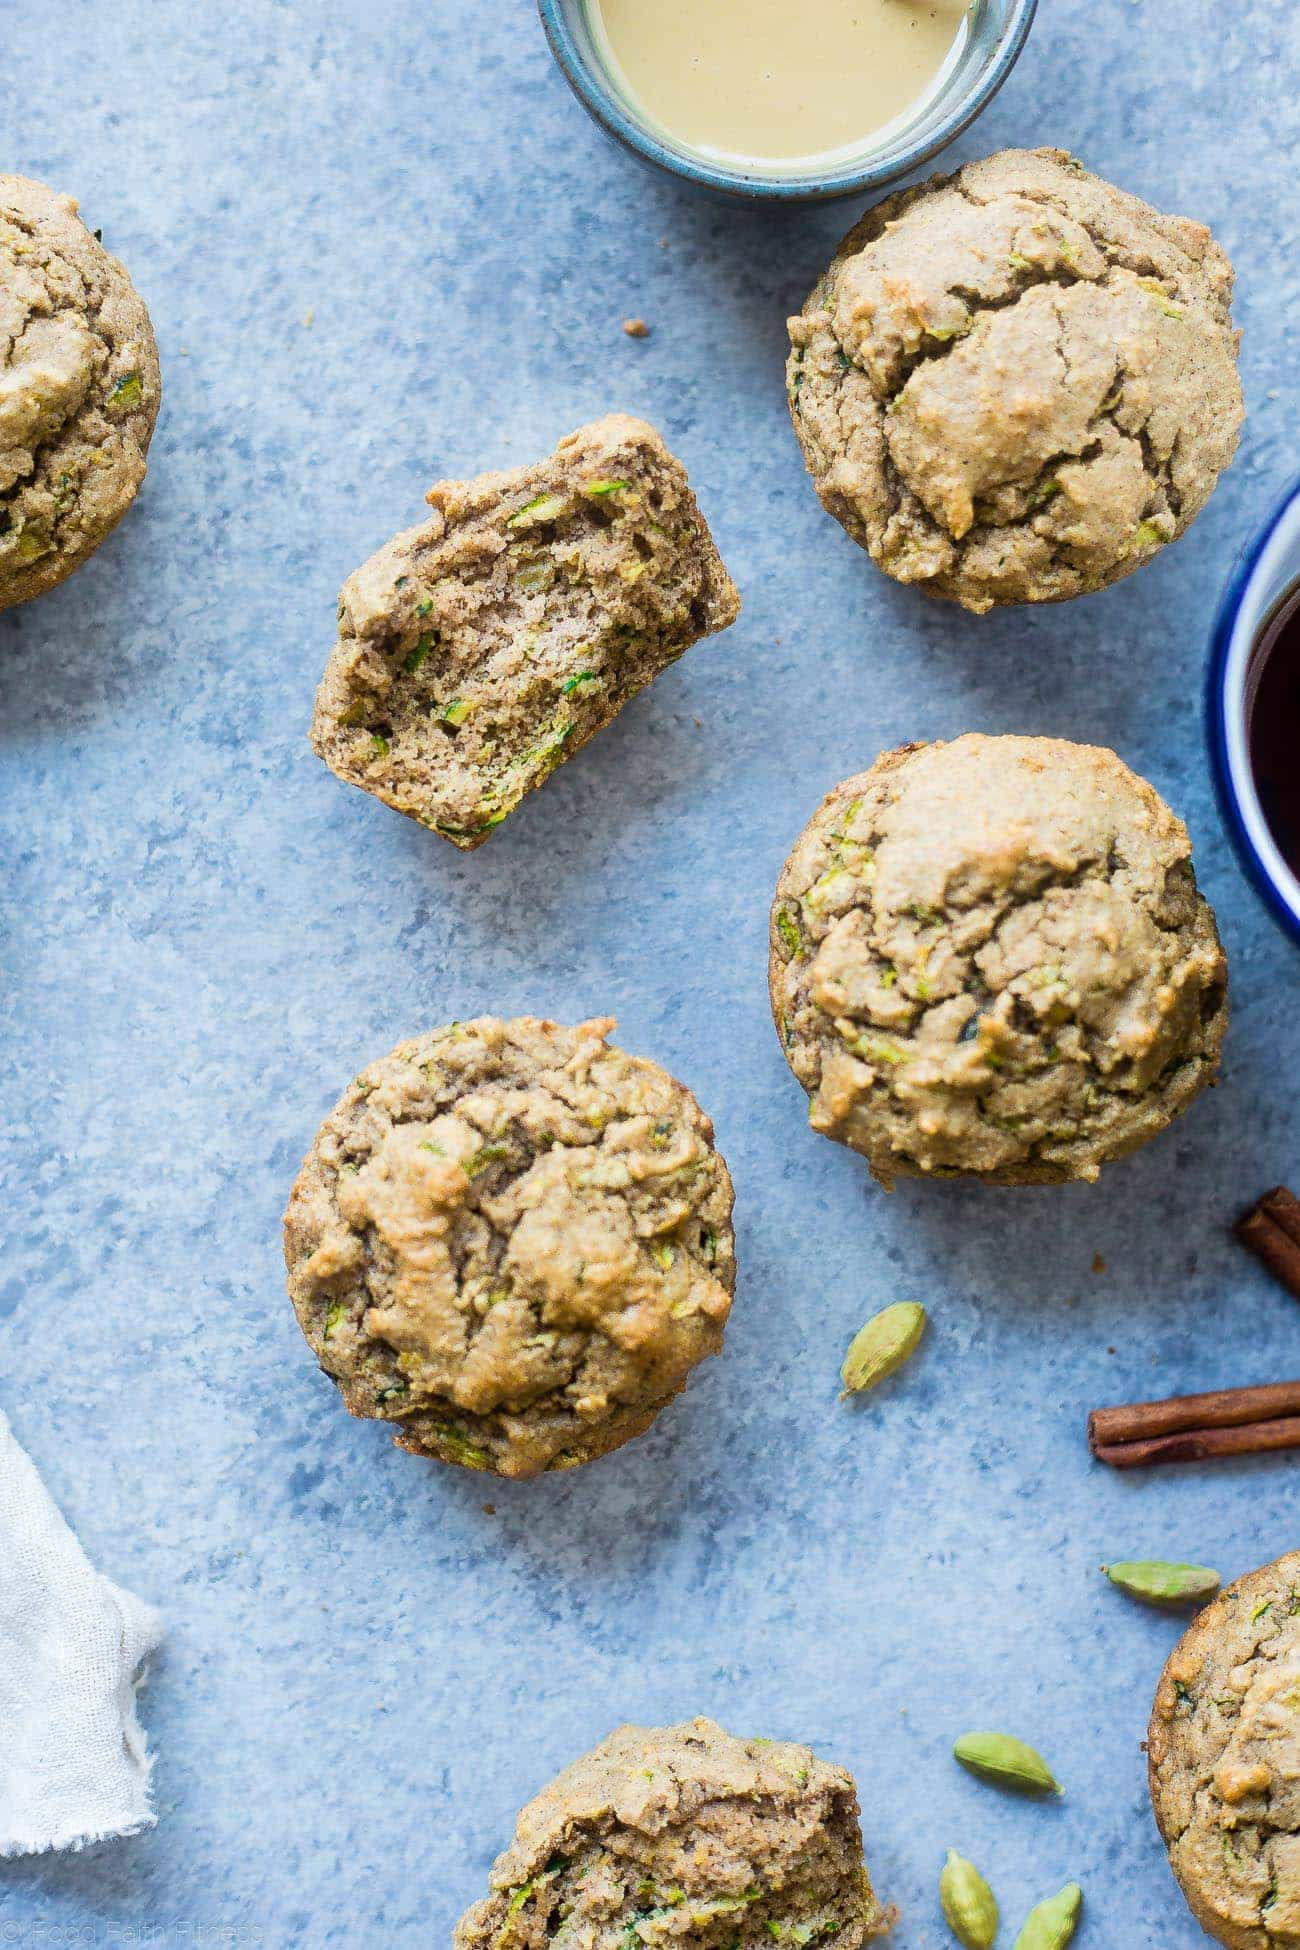 Low Carb Zucchini Tahini Muffins - These low carb muffins use zucchini and tahini to make them so moist and fluffy! They're a healthy, dairy, gluten and sugar free breakfast or snack for spring!   Foodfaithfitness.com   @FoodFaithFit